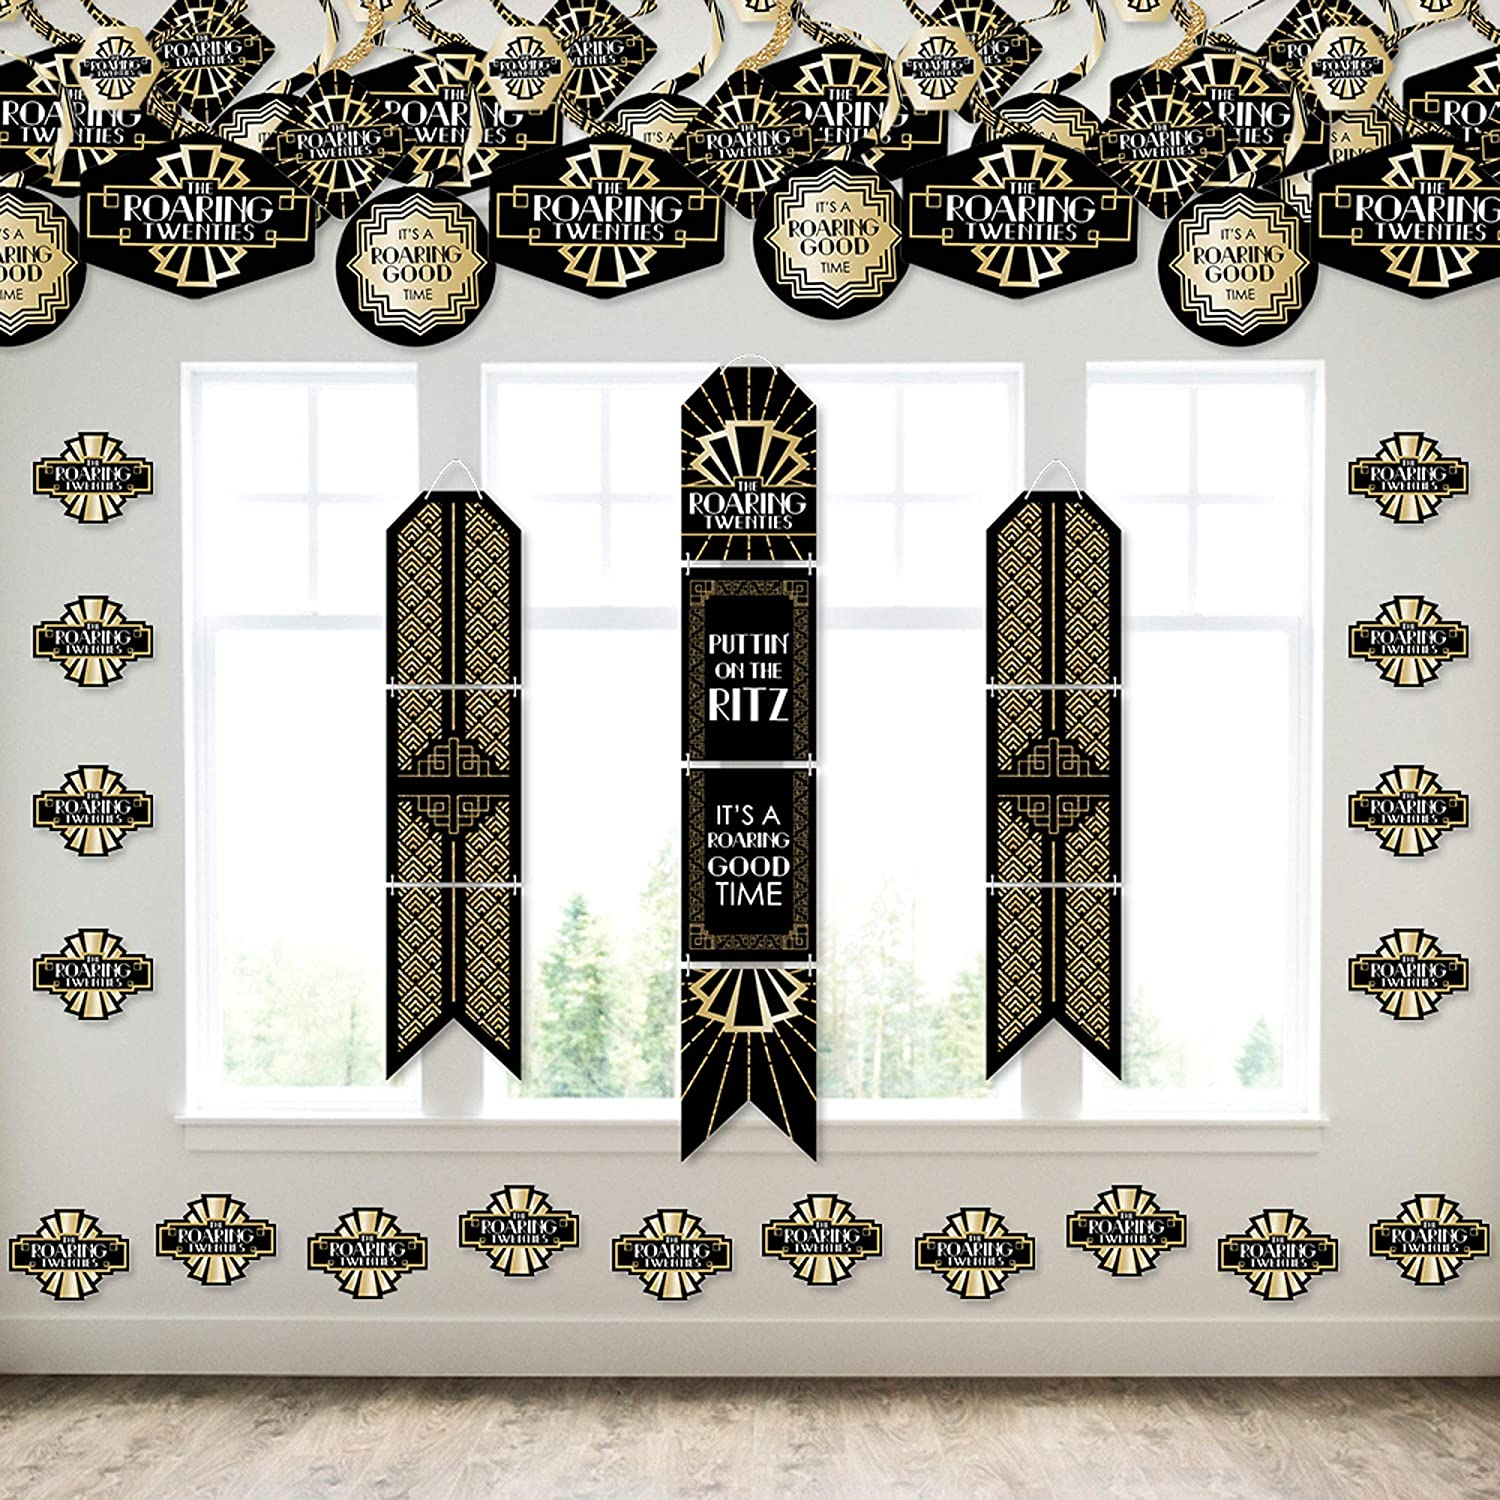 Big Dot of Happiness Roaring 20's - Wall and Door Hanging Decor - 1920s Art Deco Jazz Party Room Decoration Kit